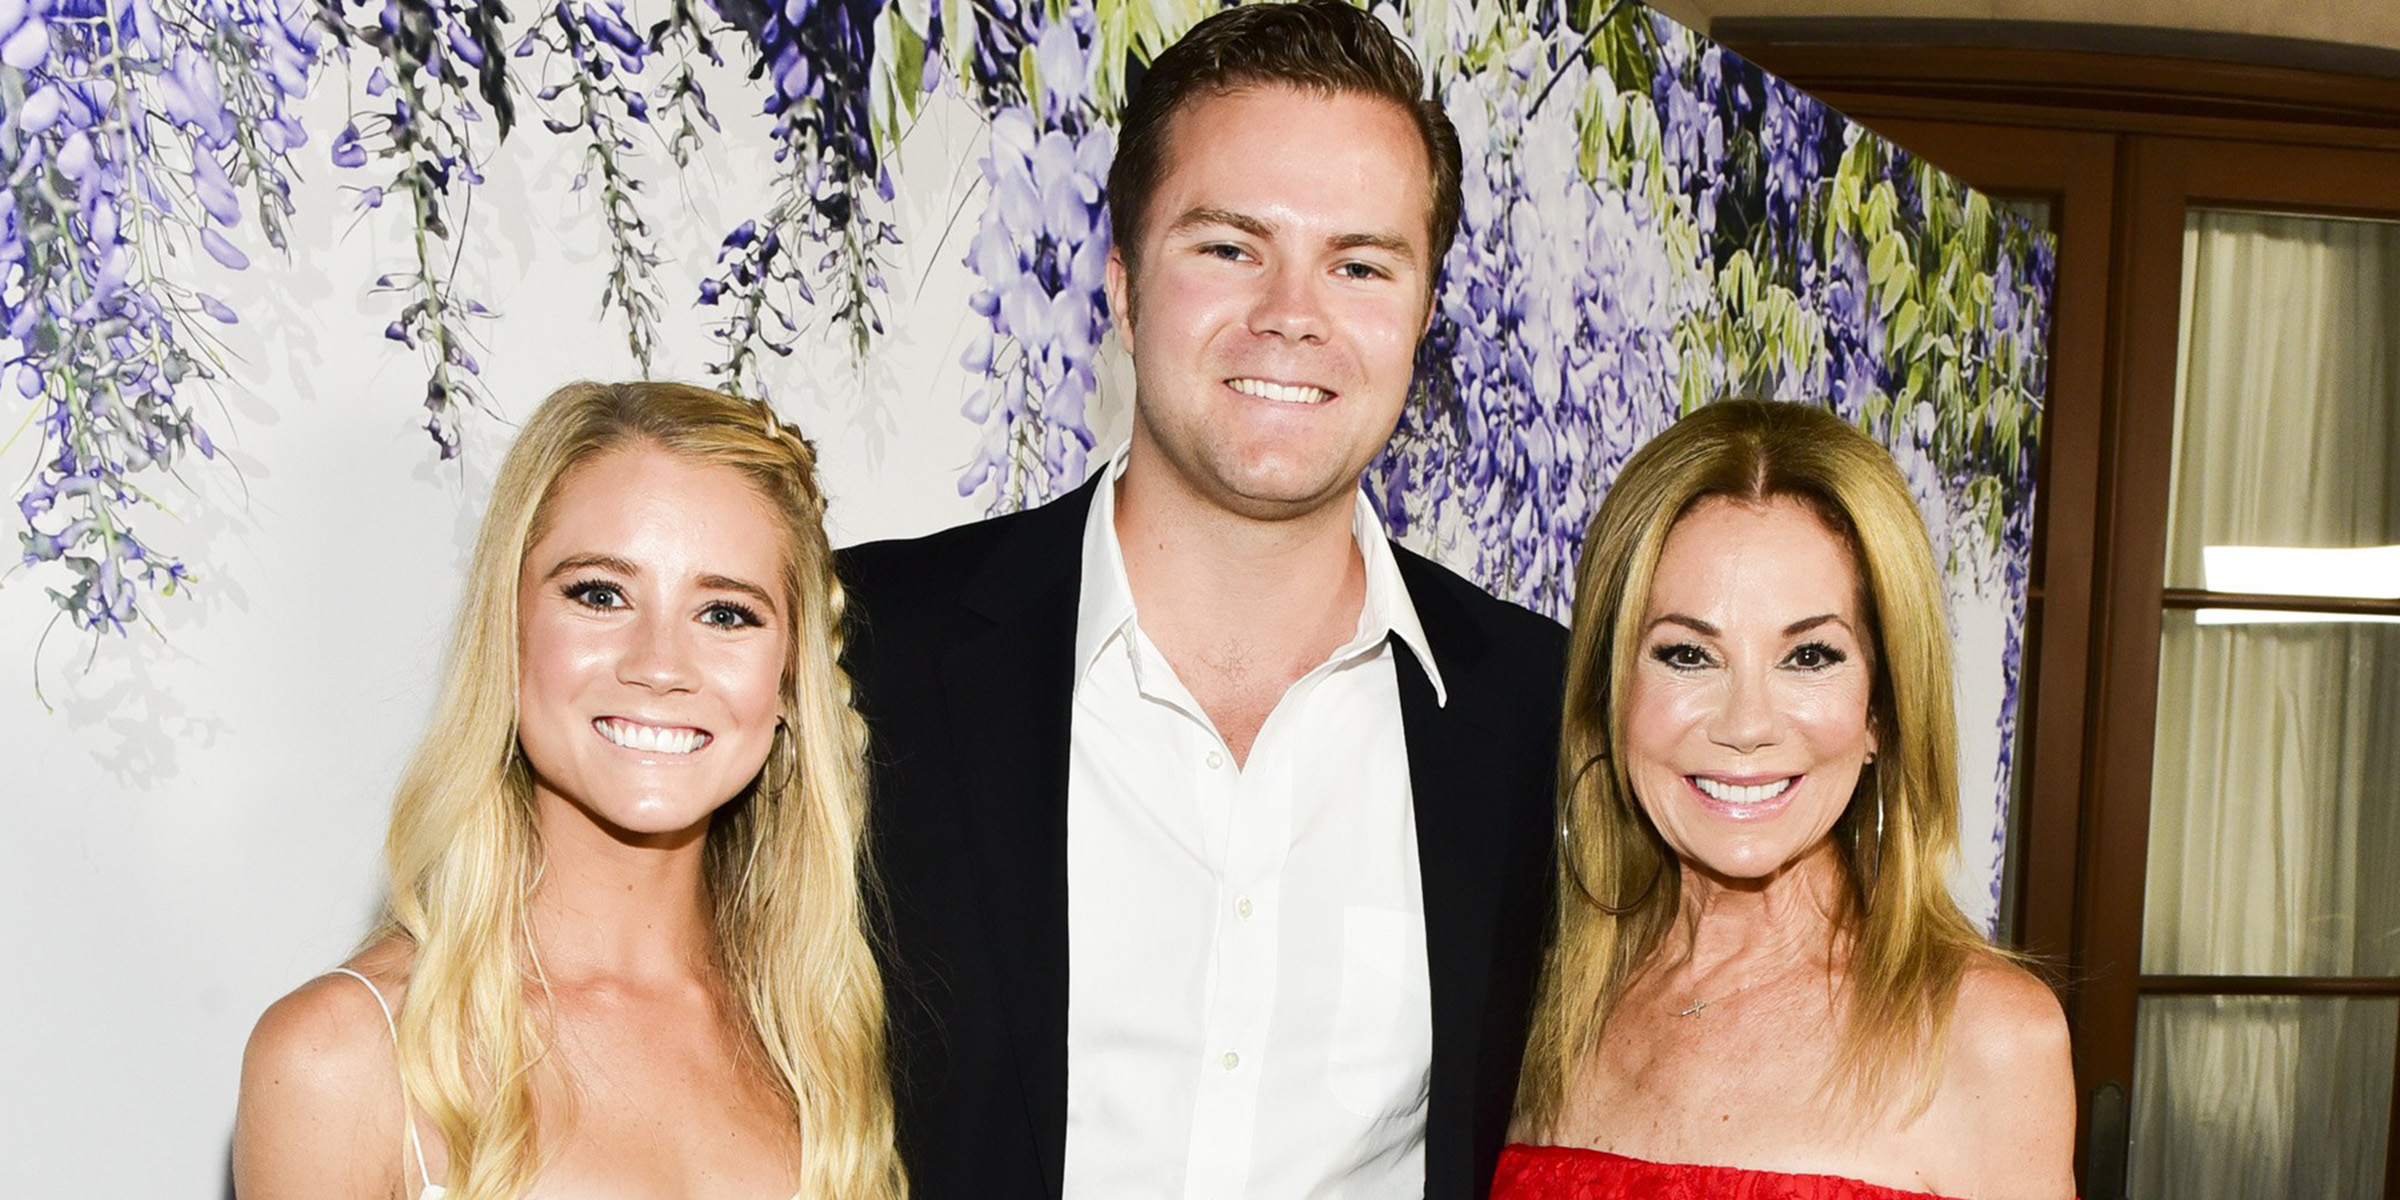 Kathie Lee Gifford's son, Cody Gifford, is engaged! Check out the happy announcement